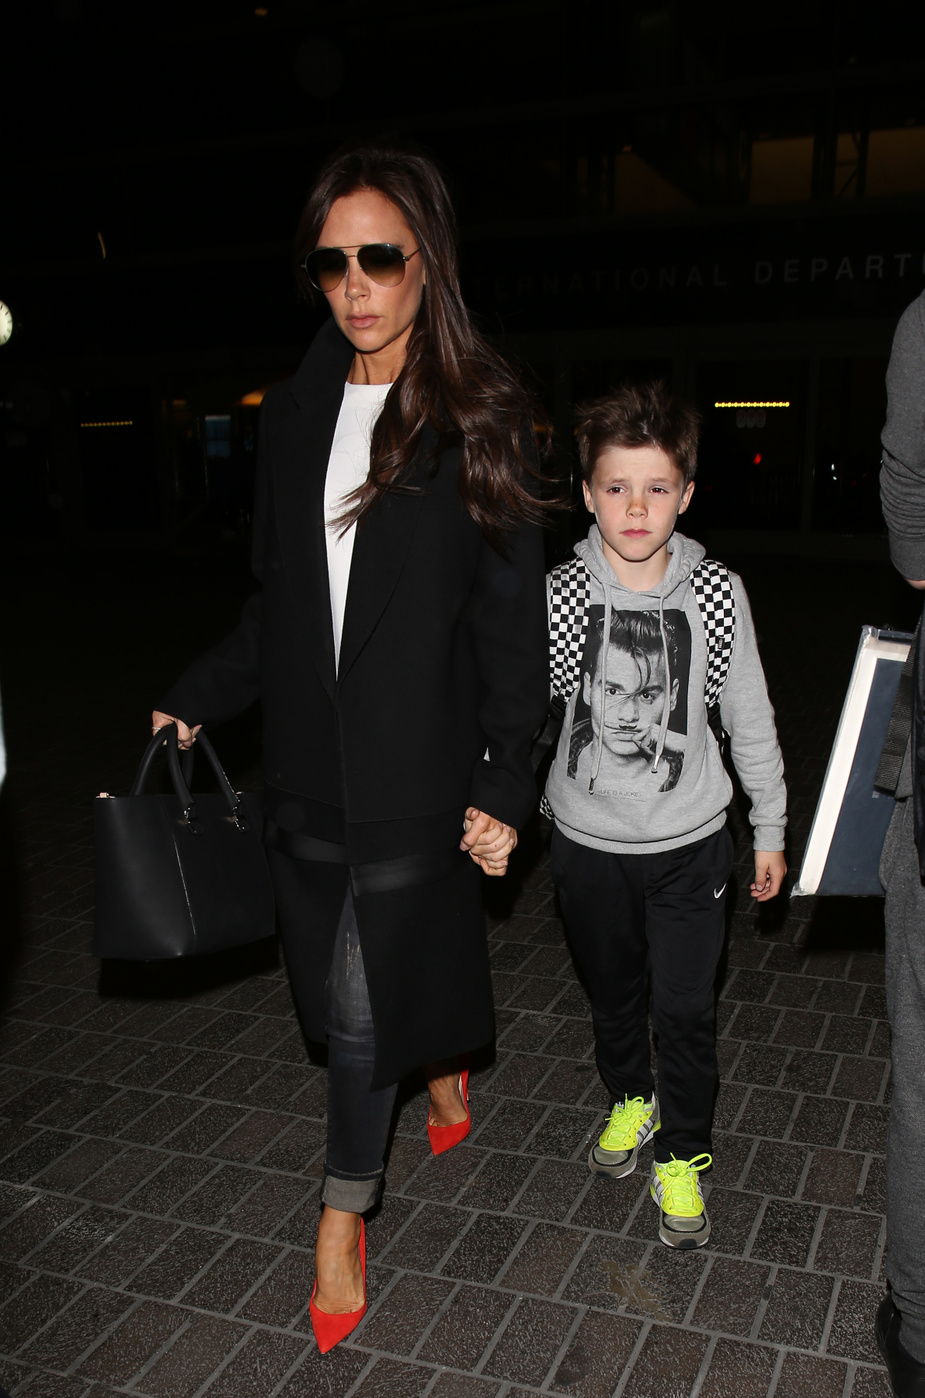 fabulous-looks-of-the-day-victoria-beckham-ba0ac5196ca147accd958620ab8d9dbe.jpg